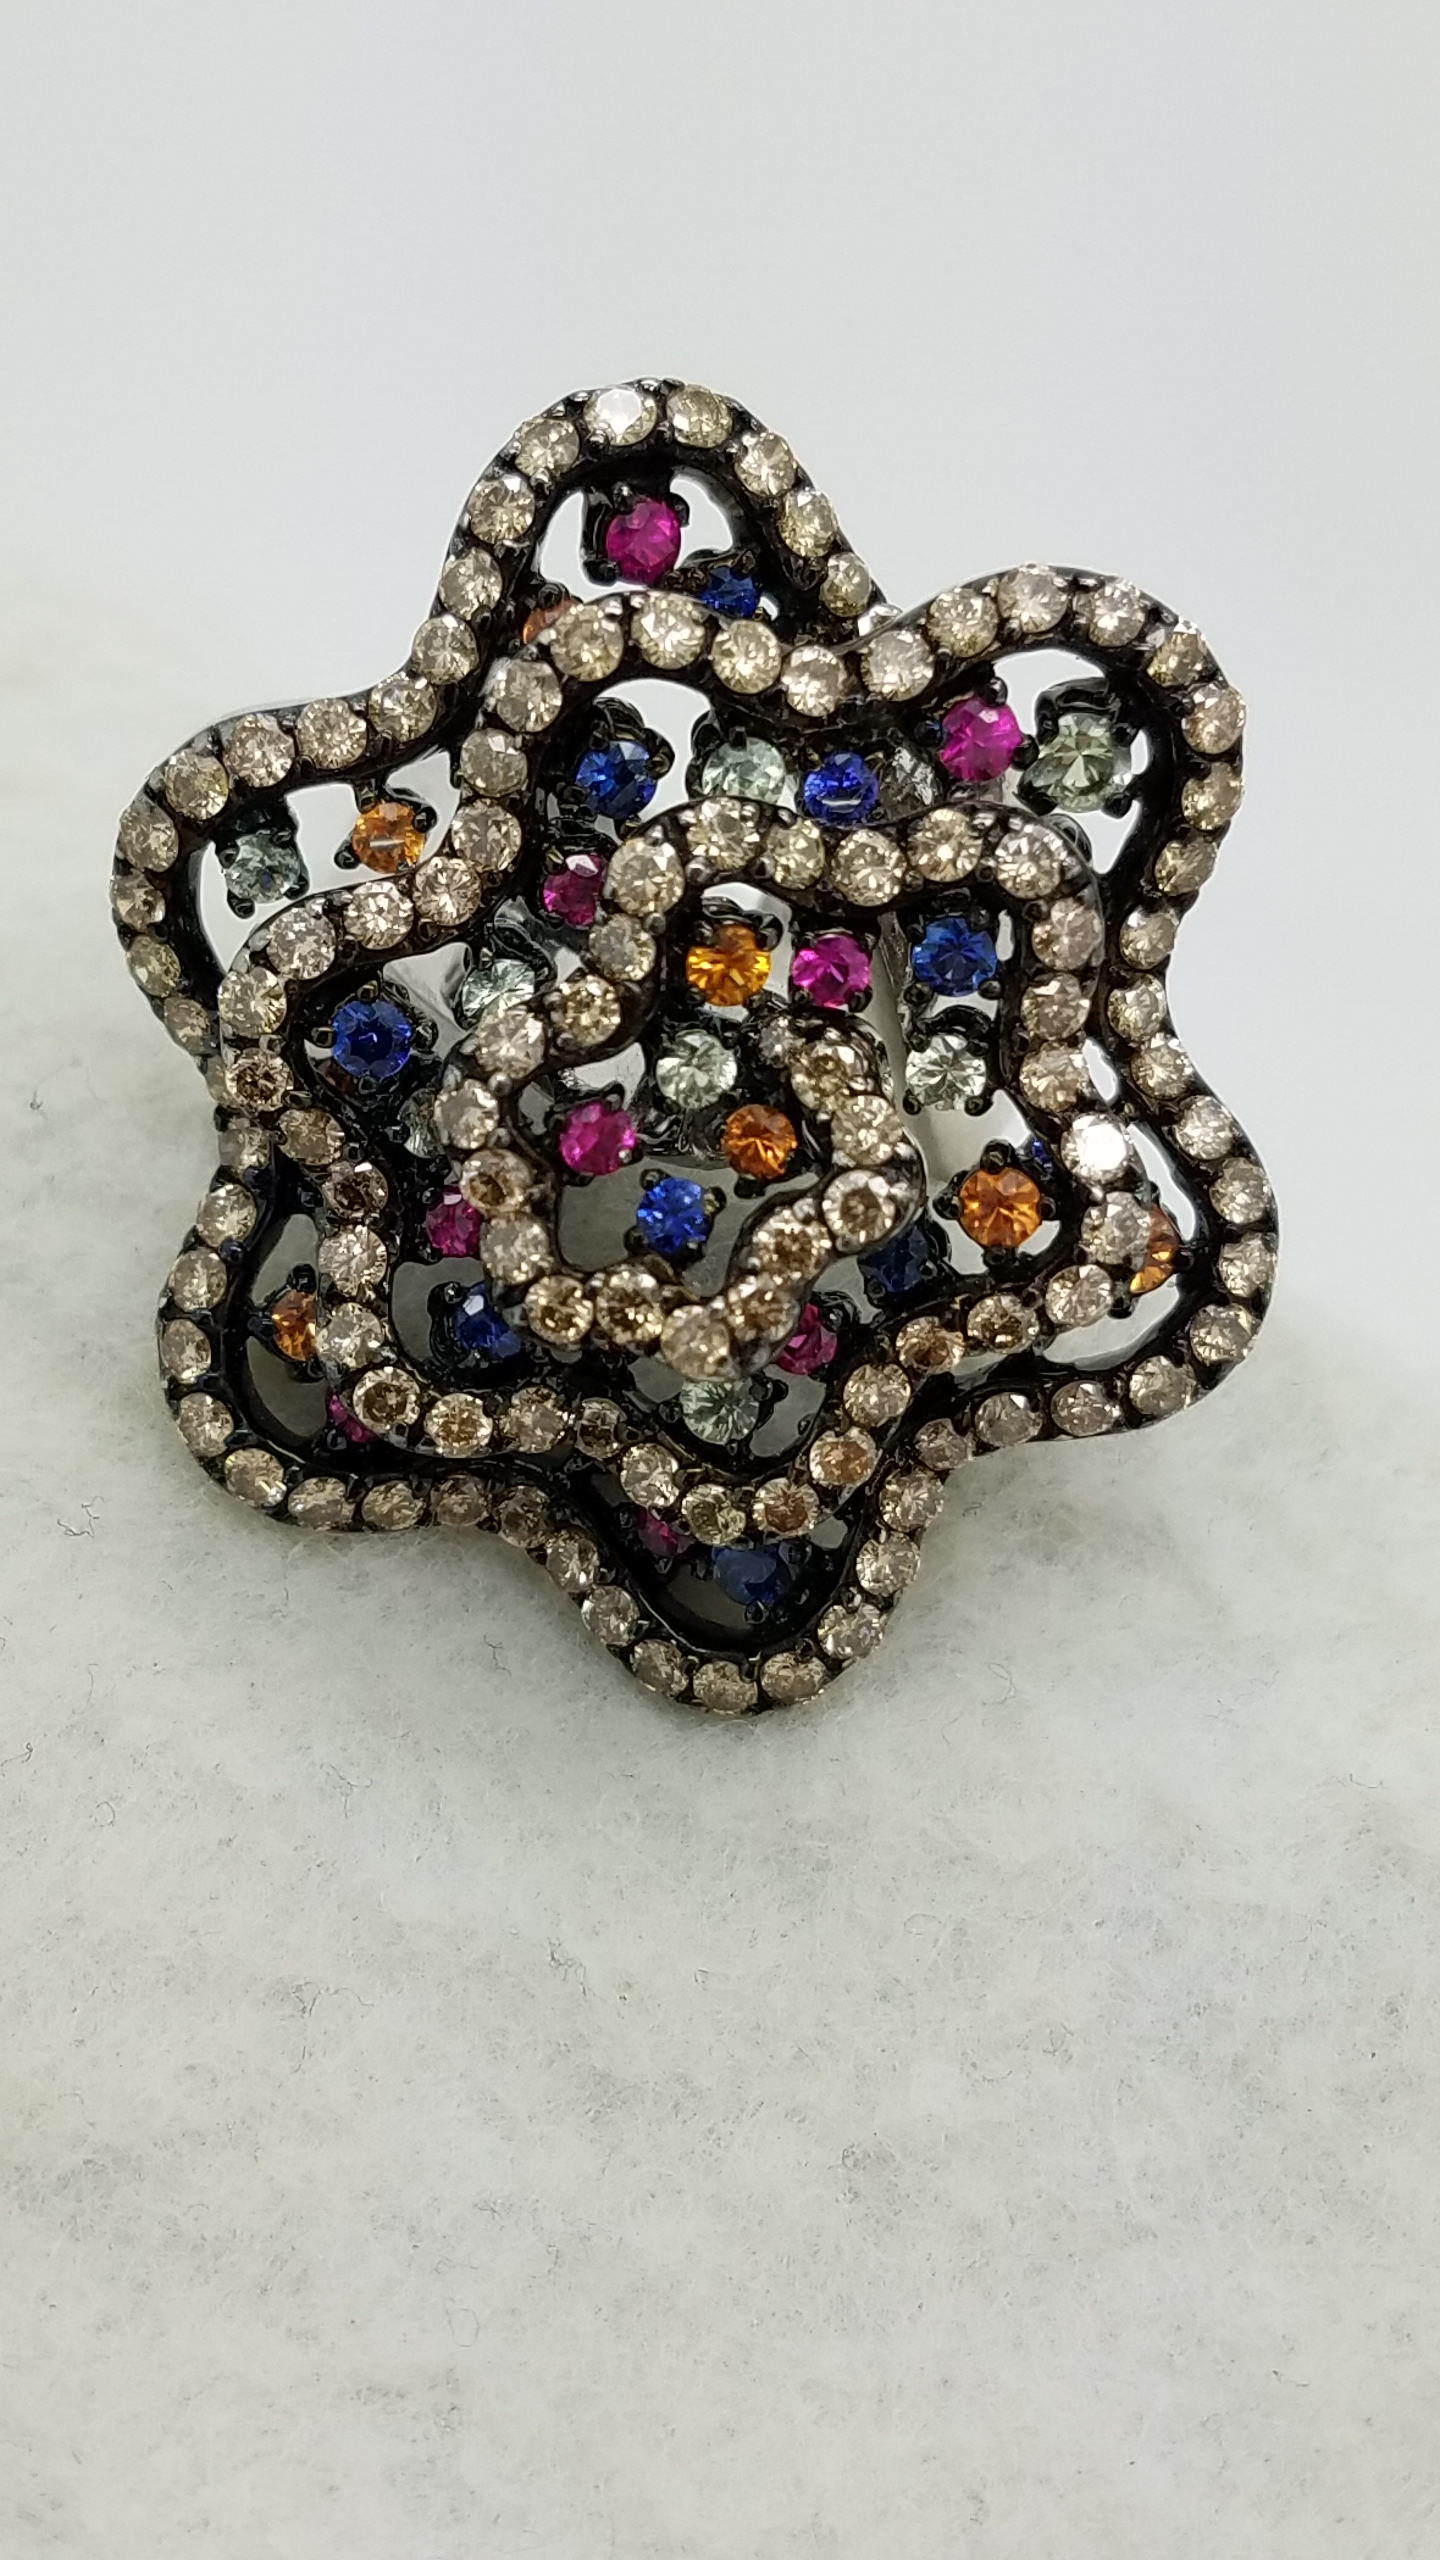 18k White Gold Star Flower Cocktail Ring with Chocolate Diamonds 2.75ct and Sapphire Mix